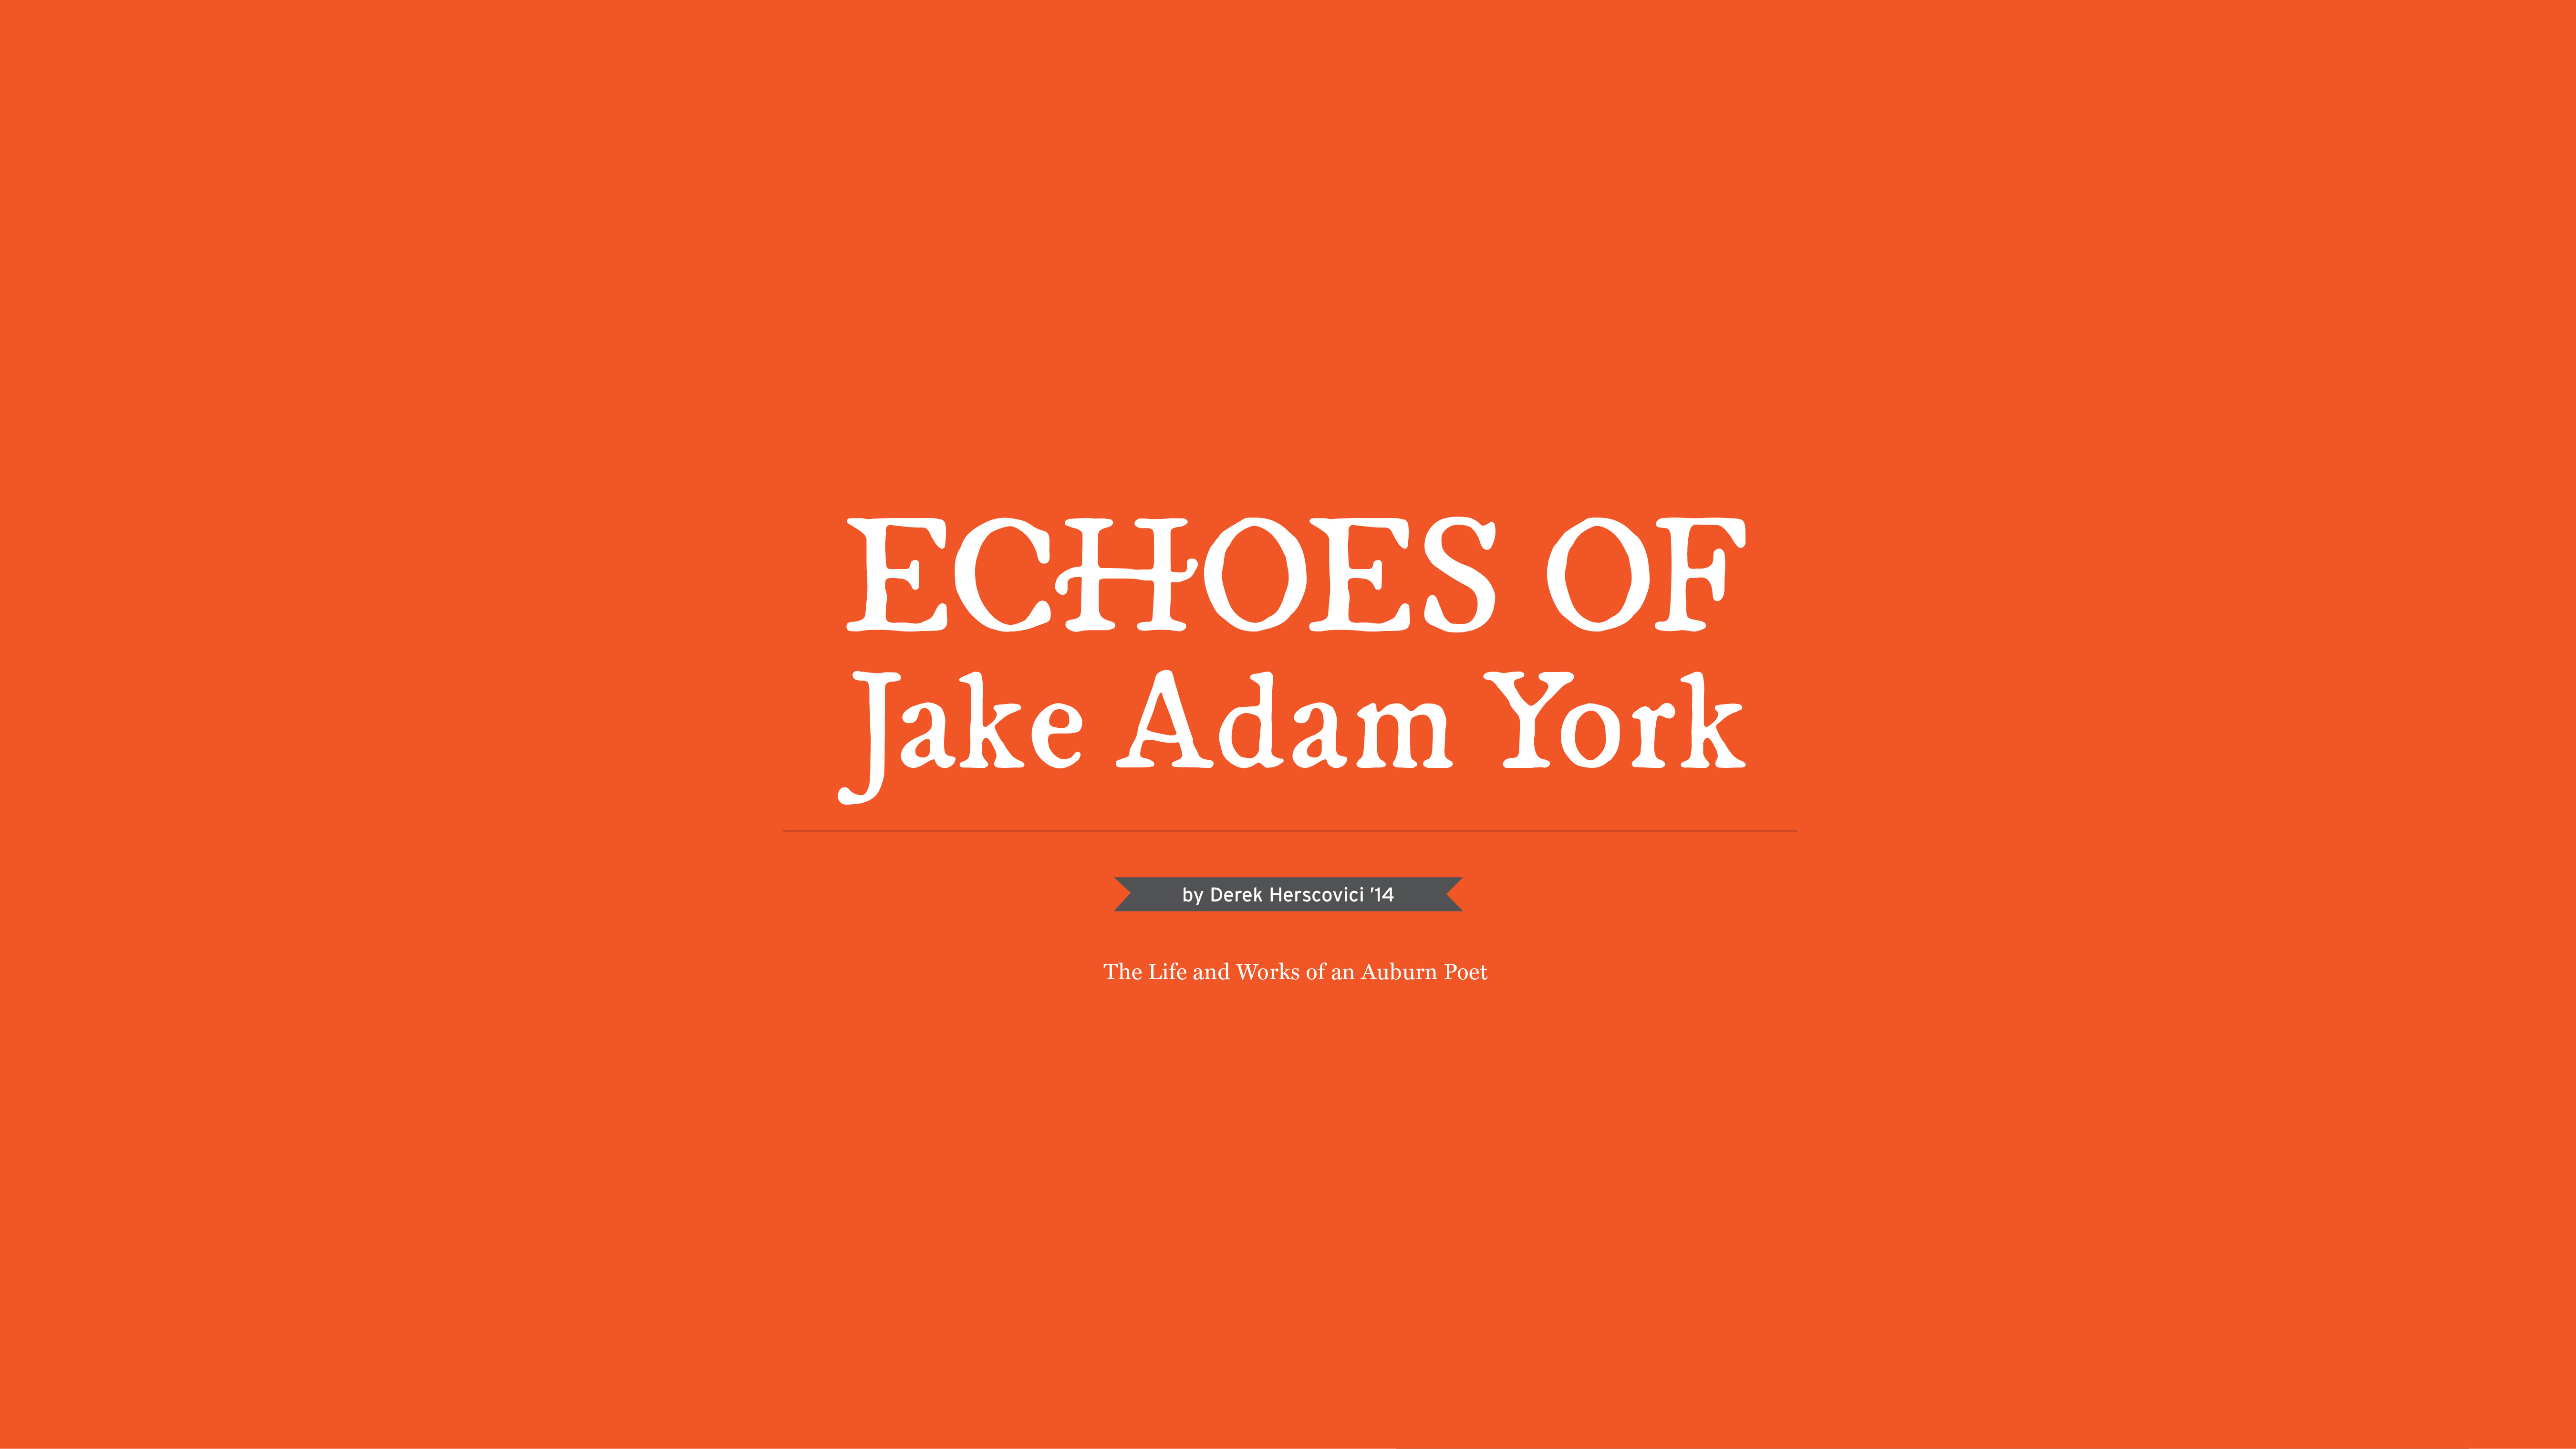 Echoes of Jake Adam York by Derek Herscovici '14; The Life and Works of an Auburn Poet